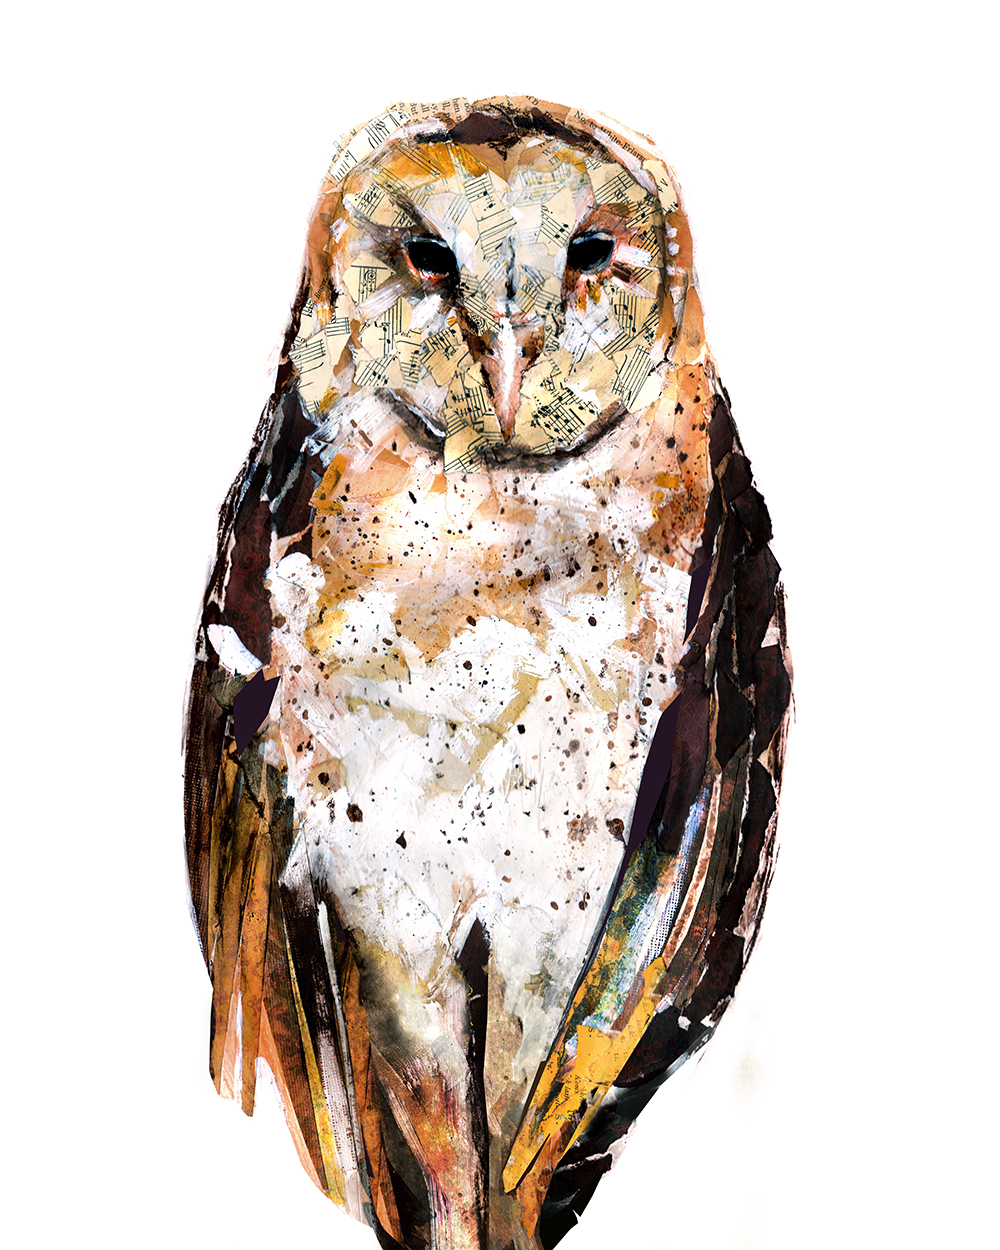 collage and acrylic painting of barn owl by artist Crystal Smith